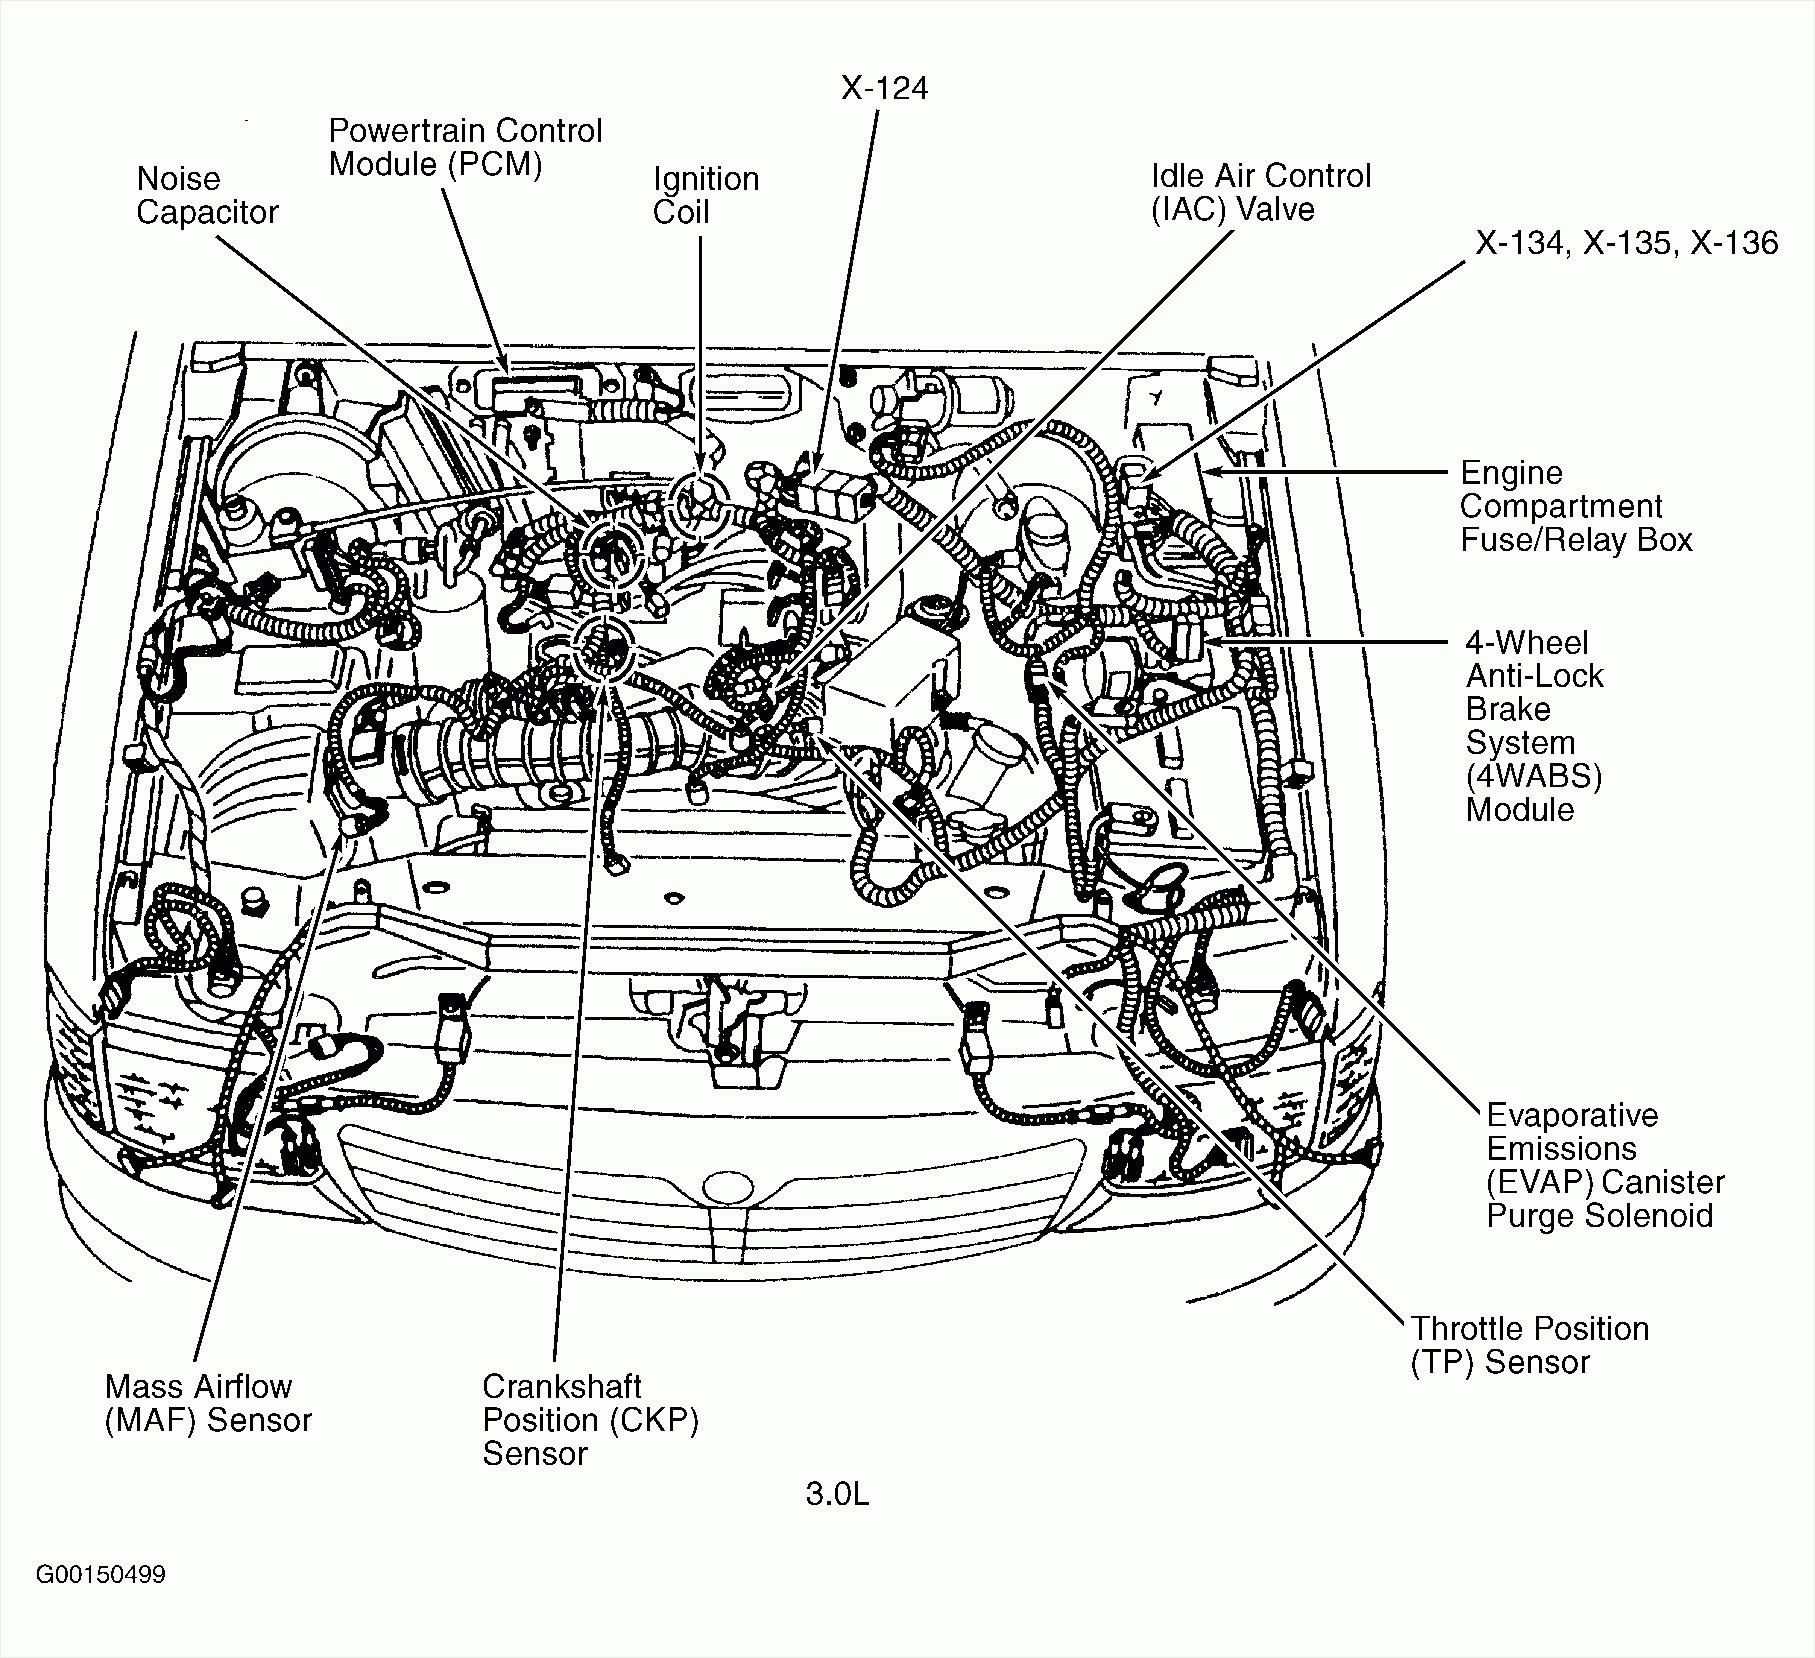 2001 toyota v6 engine diagram wiring diagramtoyota v6 engine parts diagram wiring diagrams \\u20222001 toyota v6 engine diagram content resource of